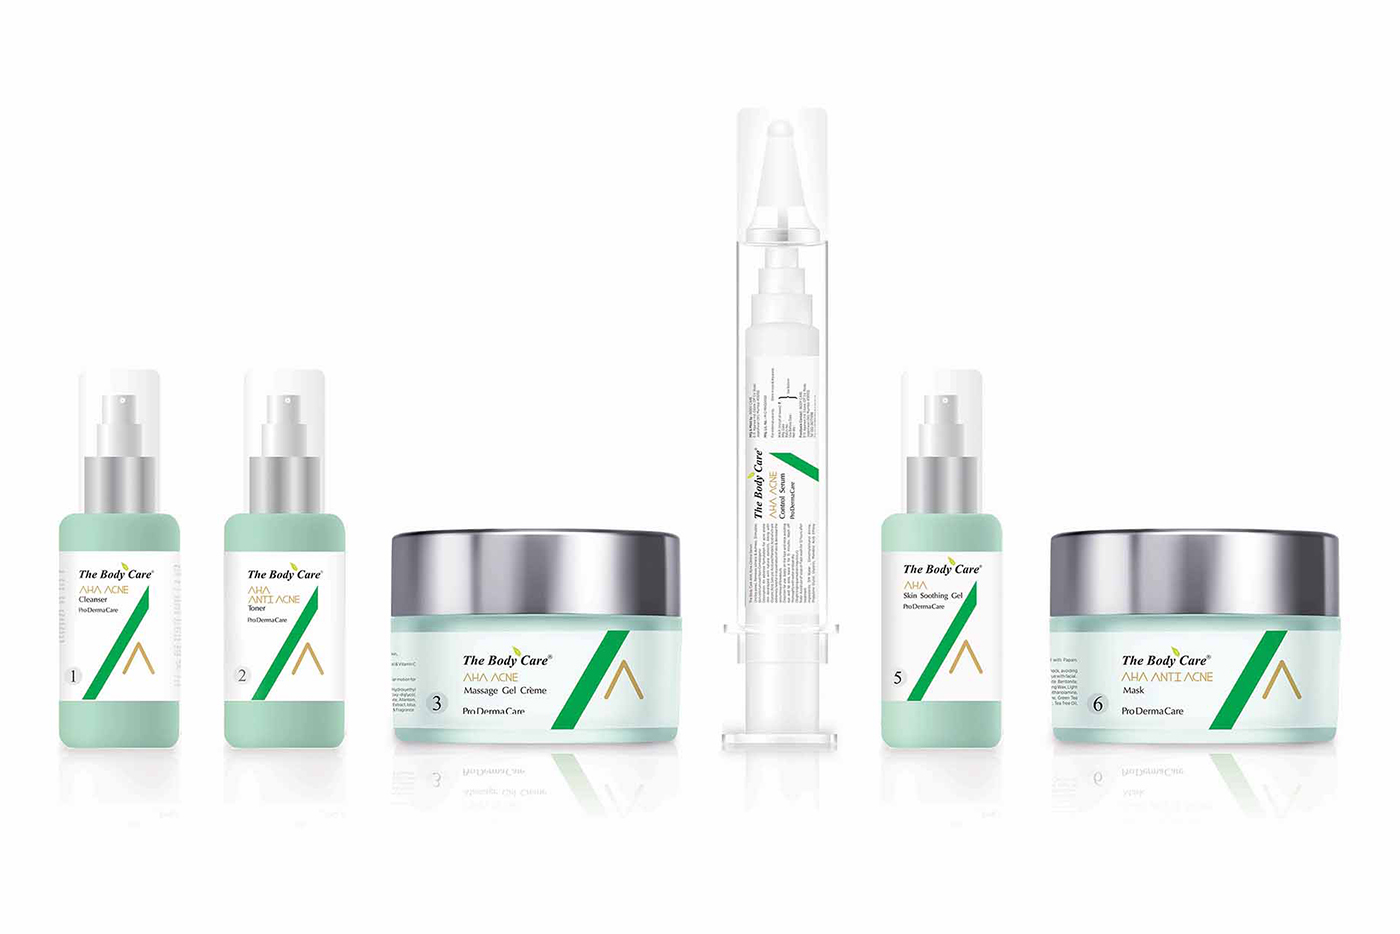 The Body Care AHA Acne Therapy Kit